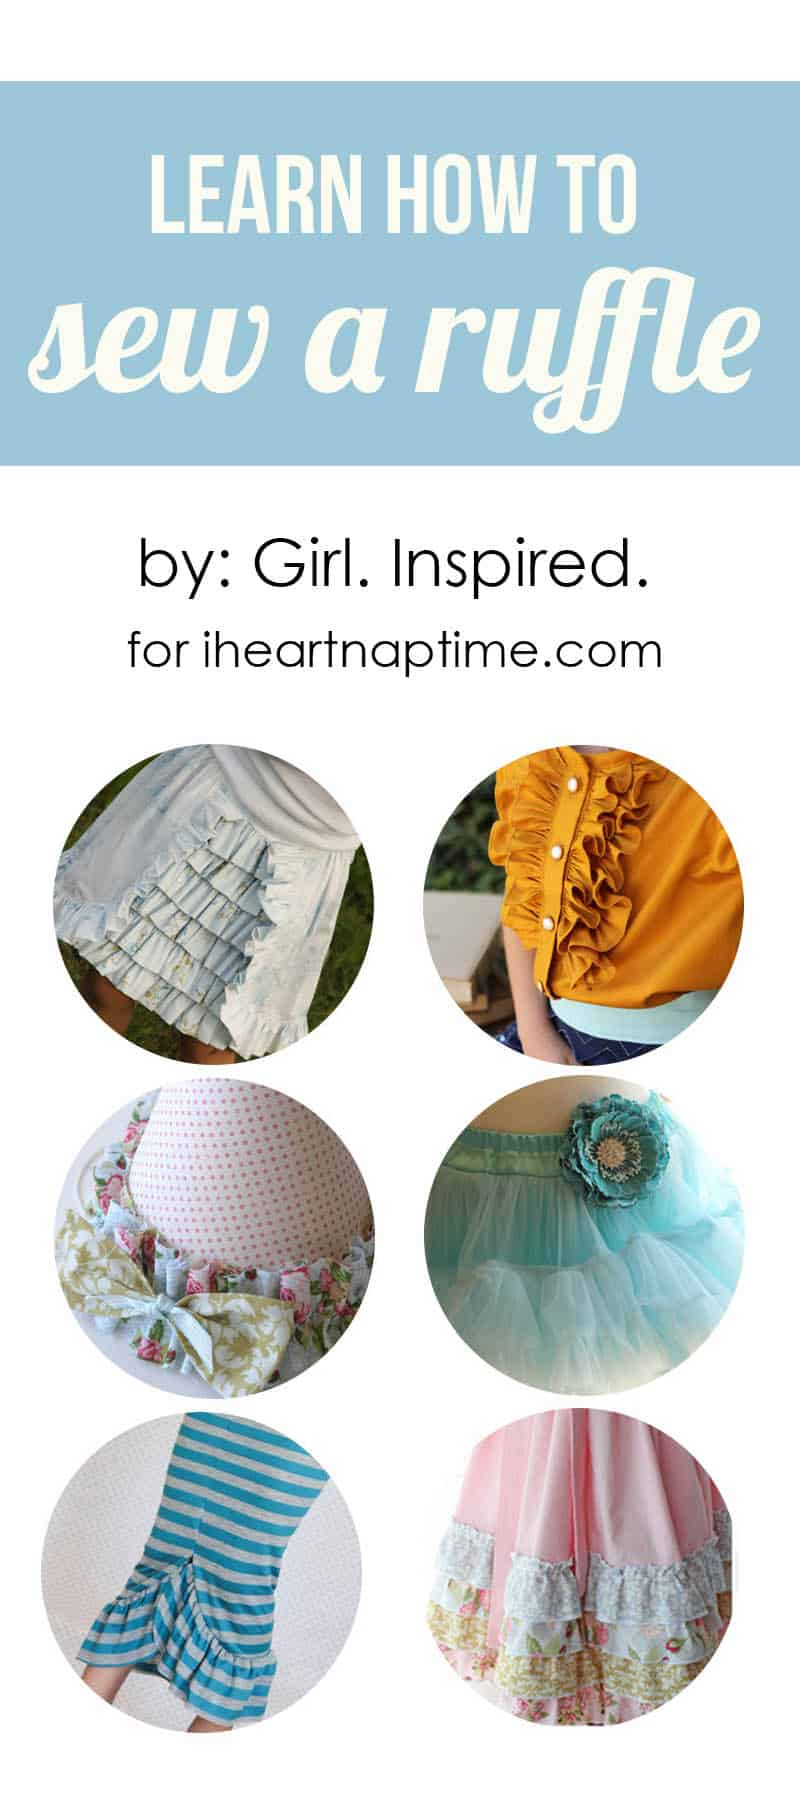 Learn how to sew a ruffle on iheartnaptime.com